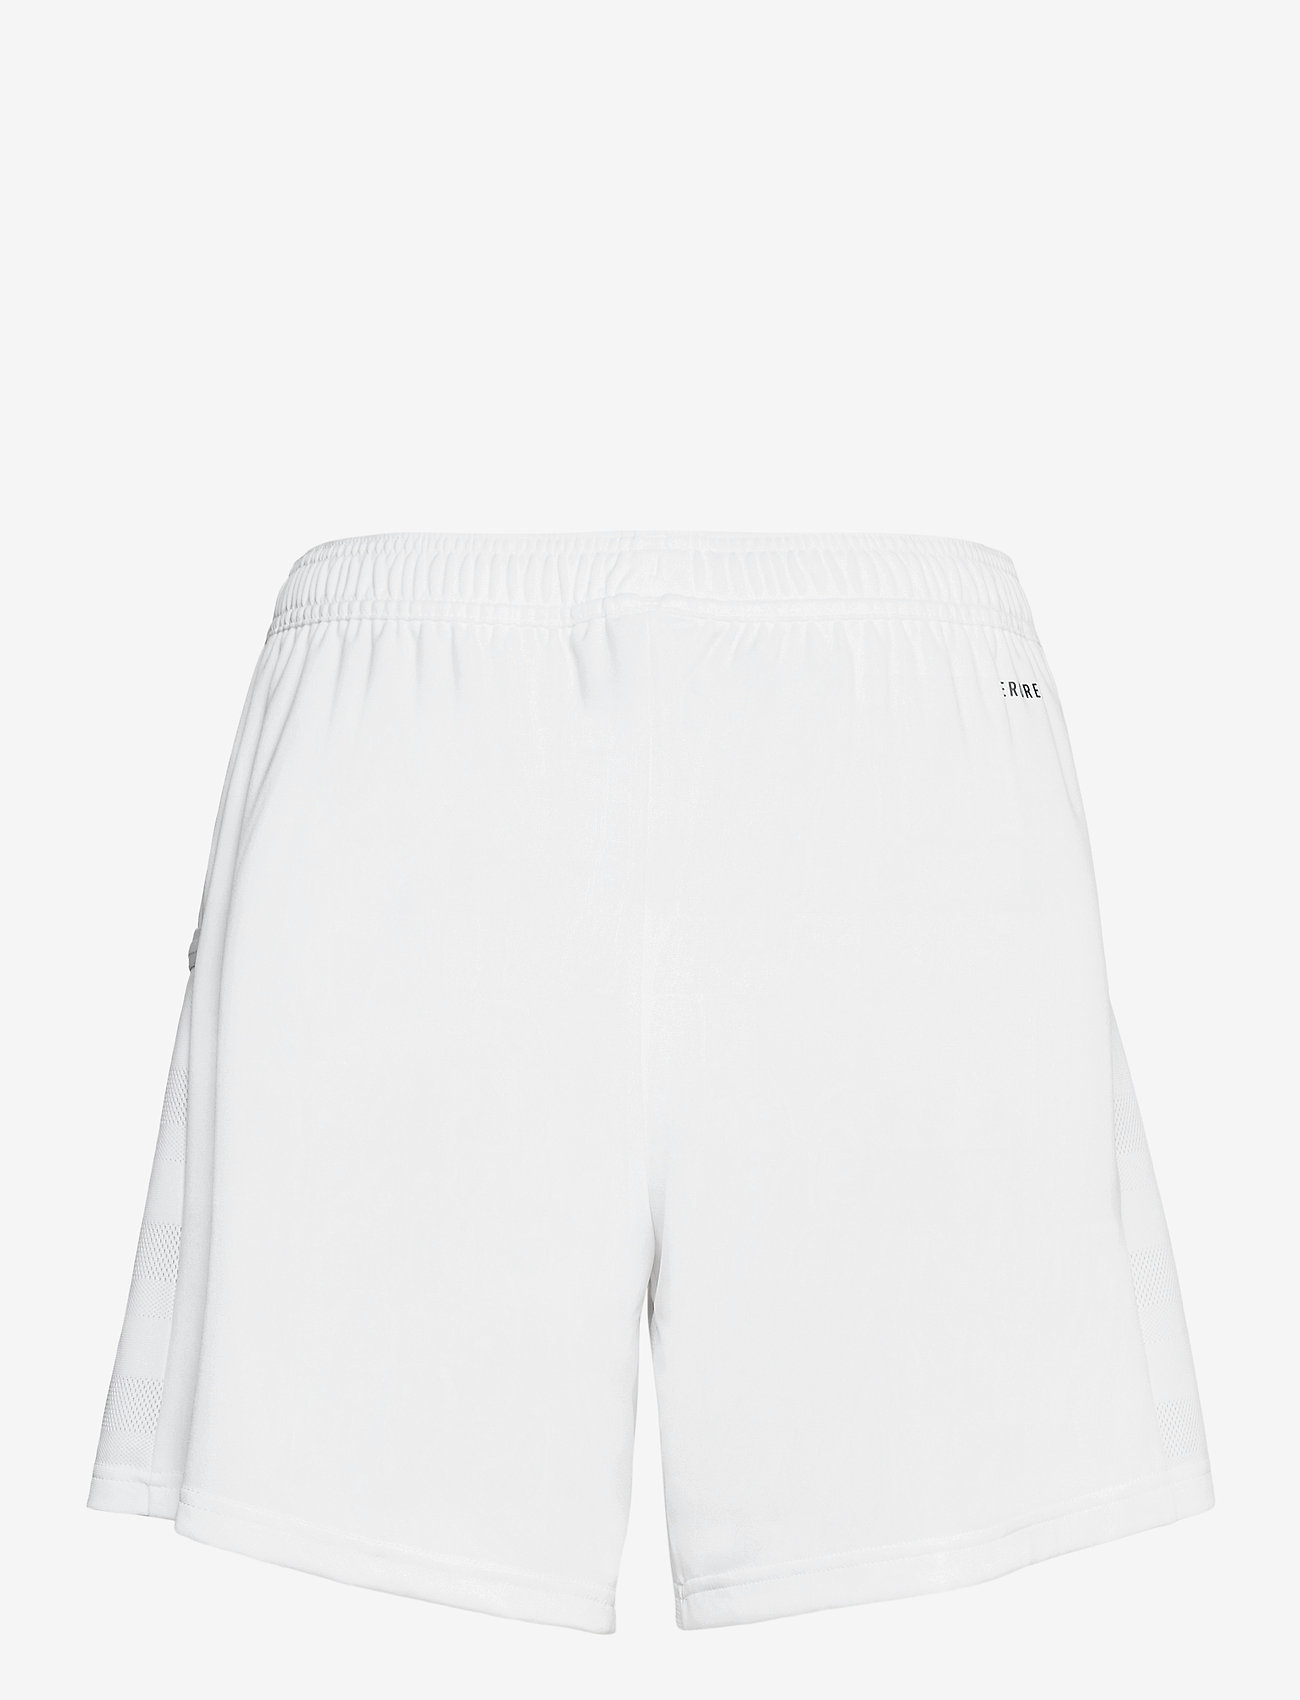 adidas Performance - Team 19 Shorts W - training korte broek - white - 1